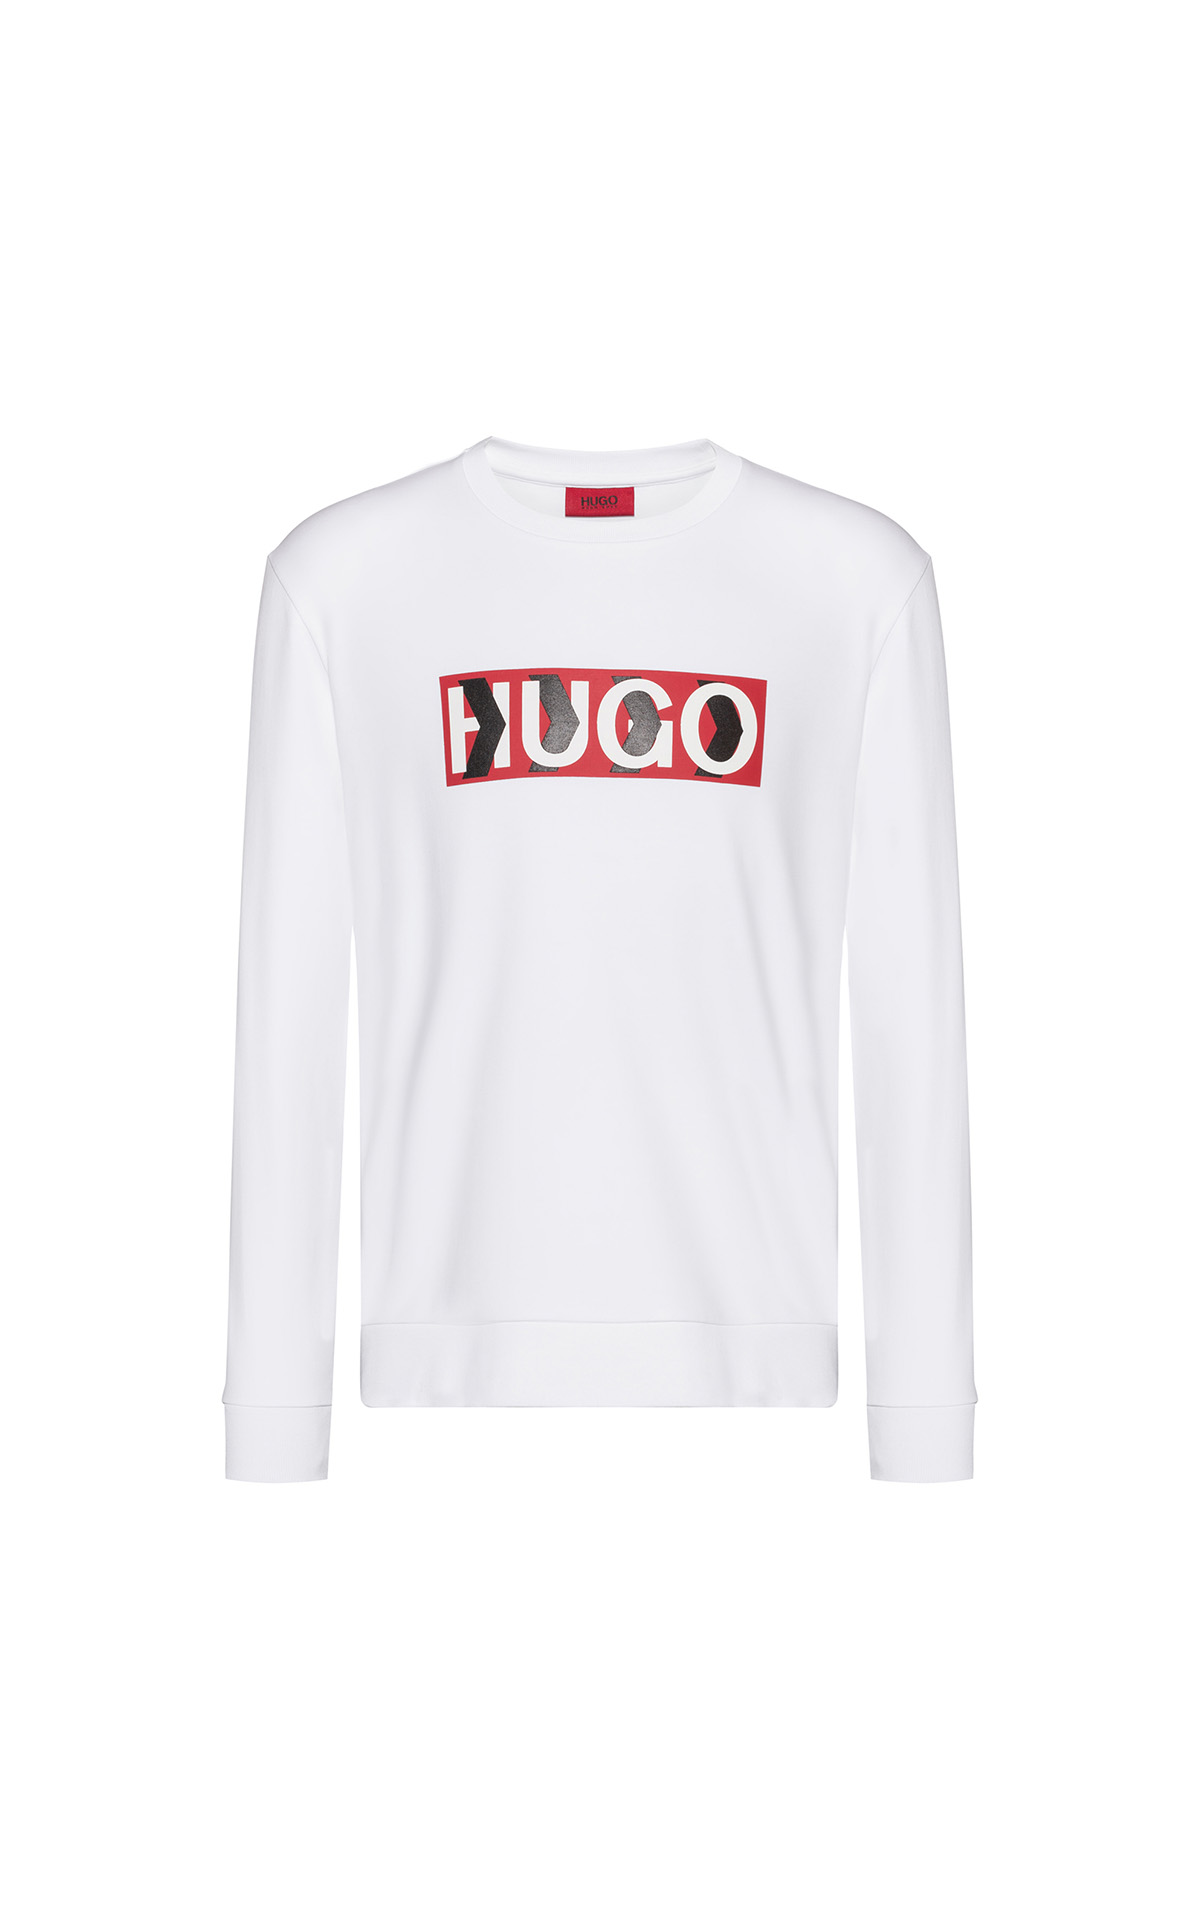 HUGO sweatshirt at The Bicester Village Shopping Collection